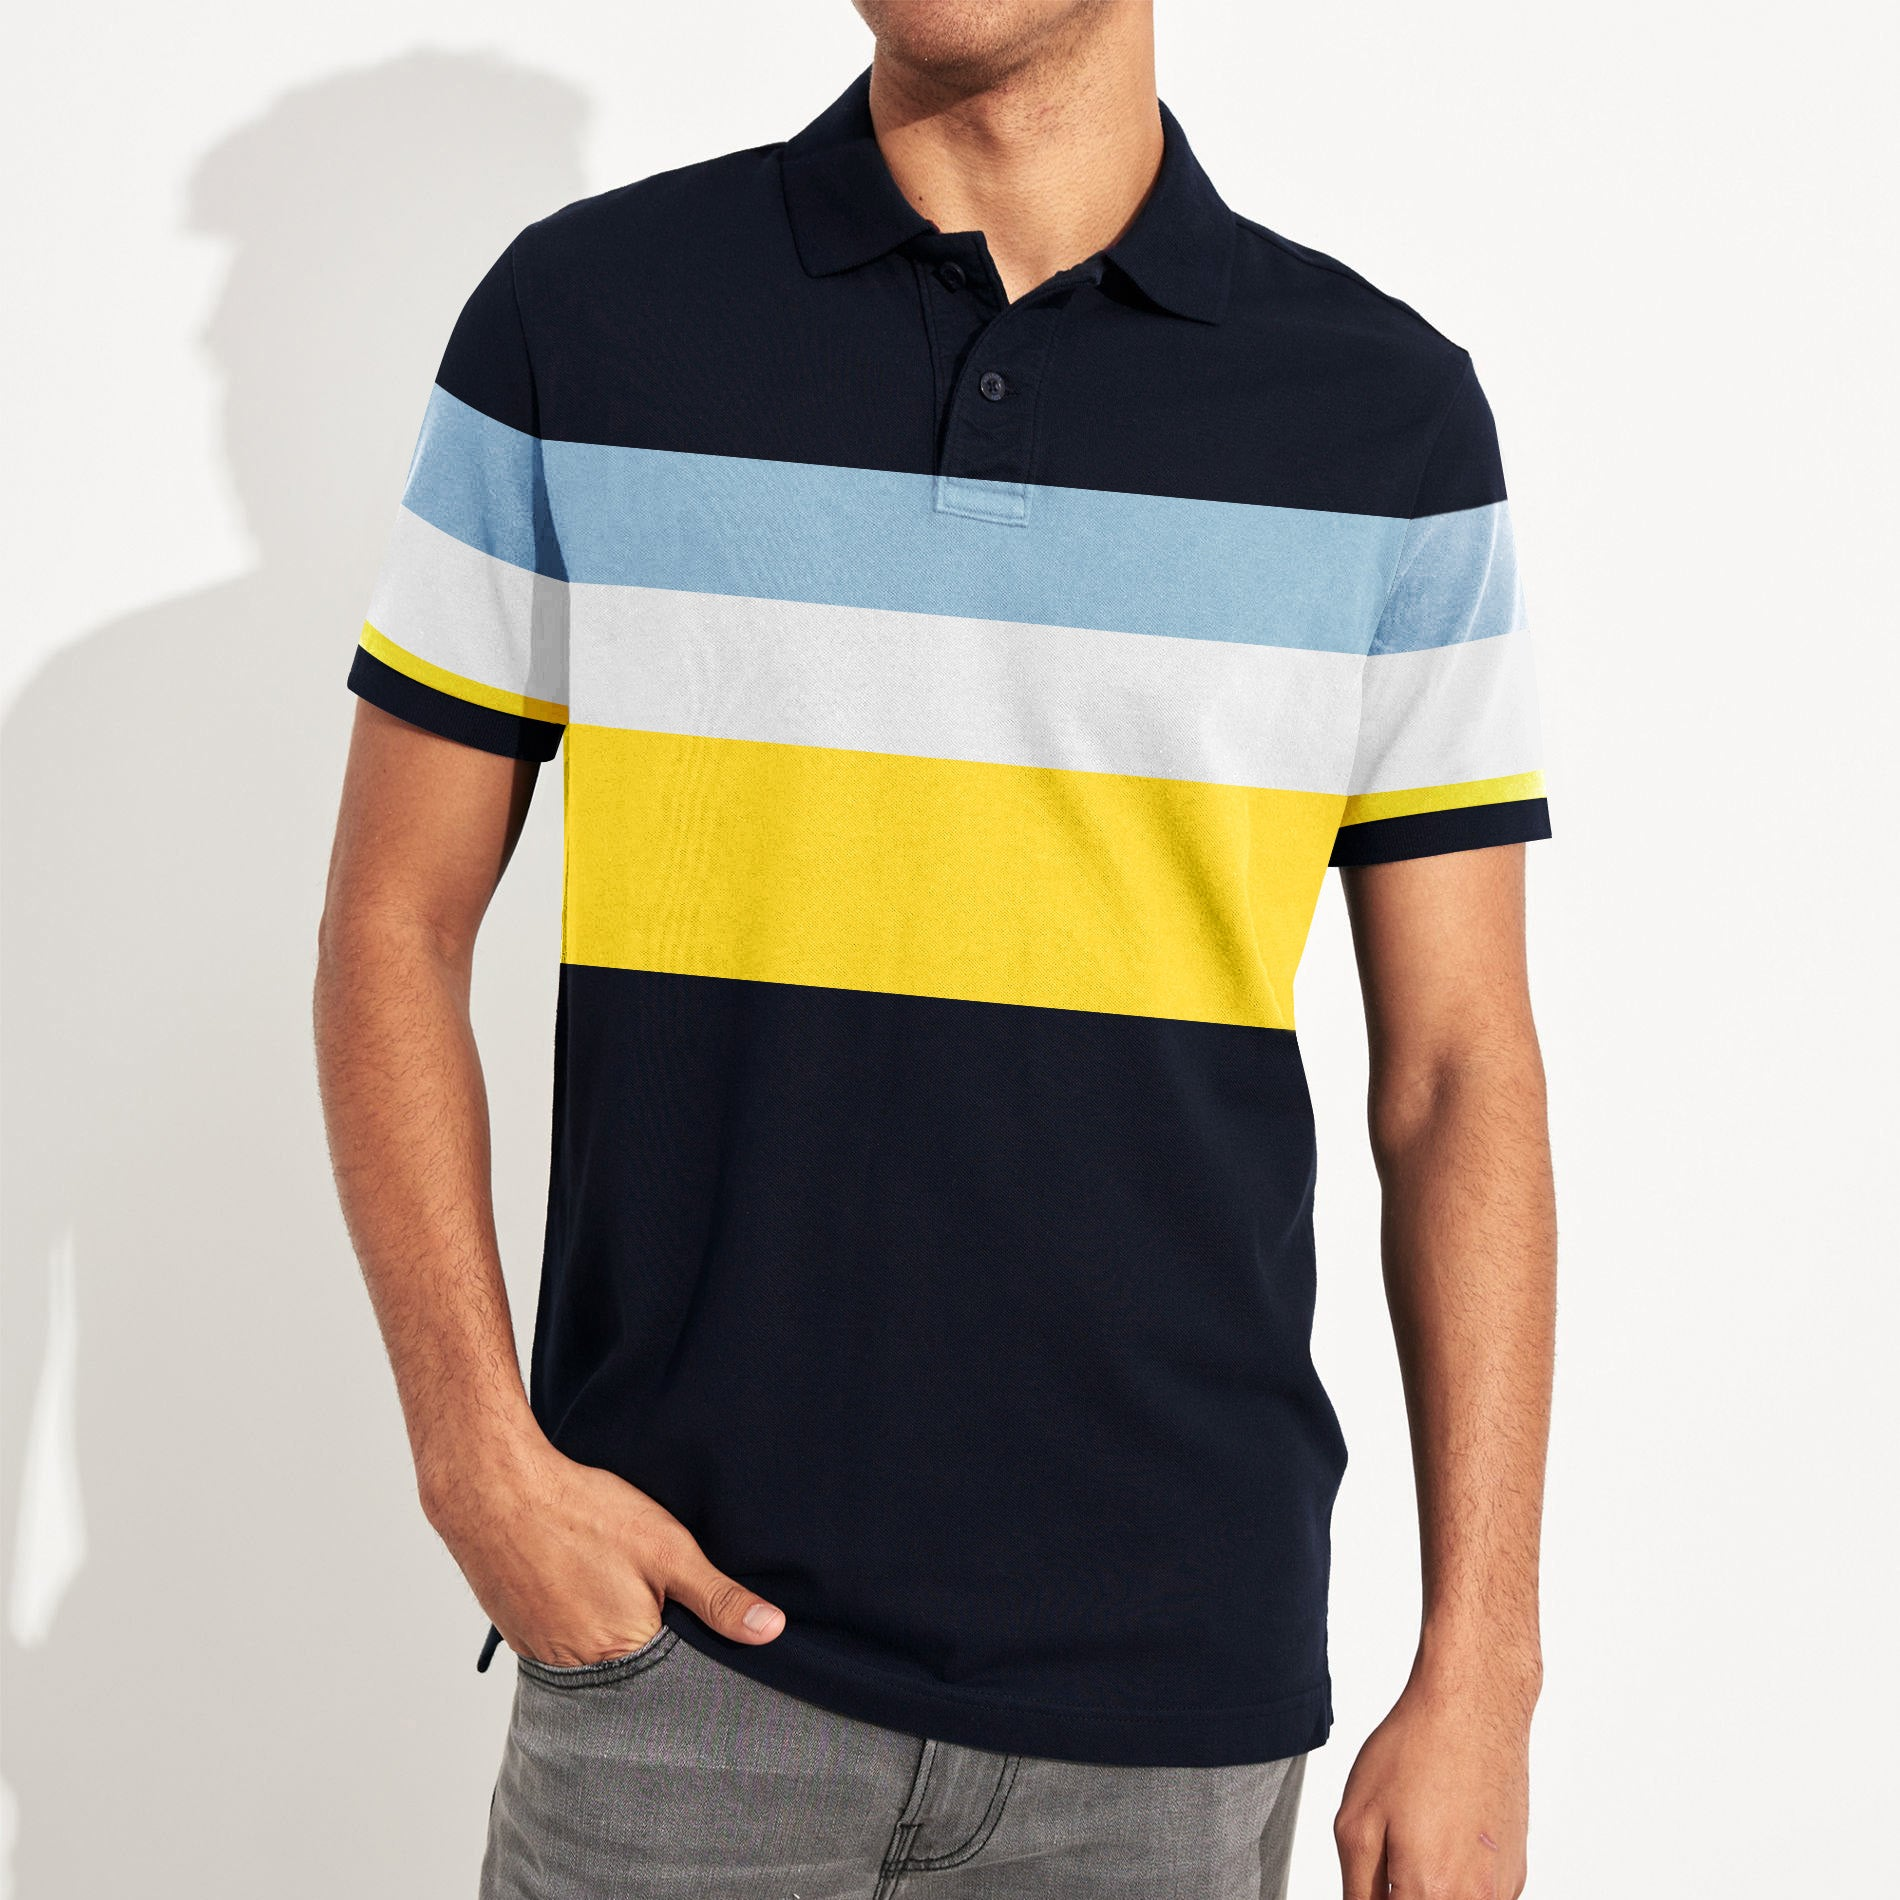 Banana Republic Short Sleeve P.Q Polo Shirt For Men-Dark Navy with Stripe-BE8412